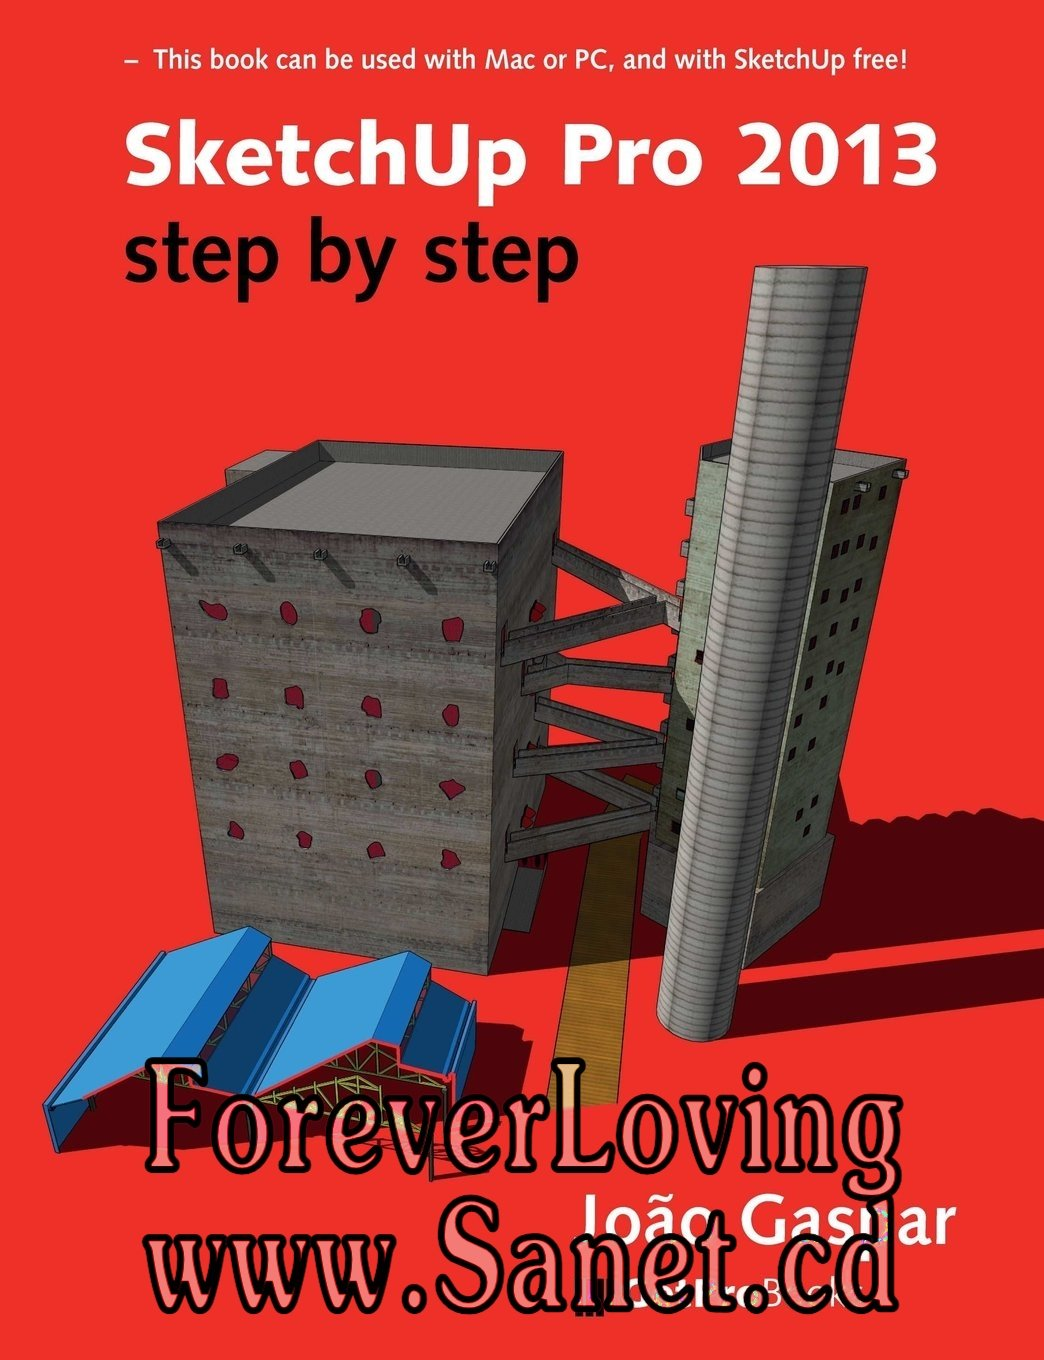 Download sketchup pro 2013 step by step softarchive for Sketchup 2013